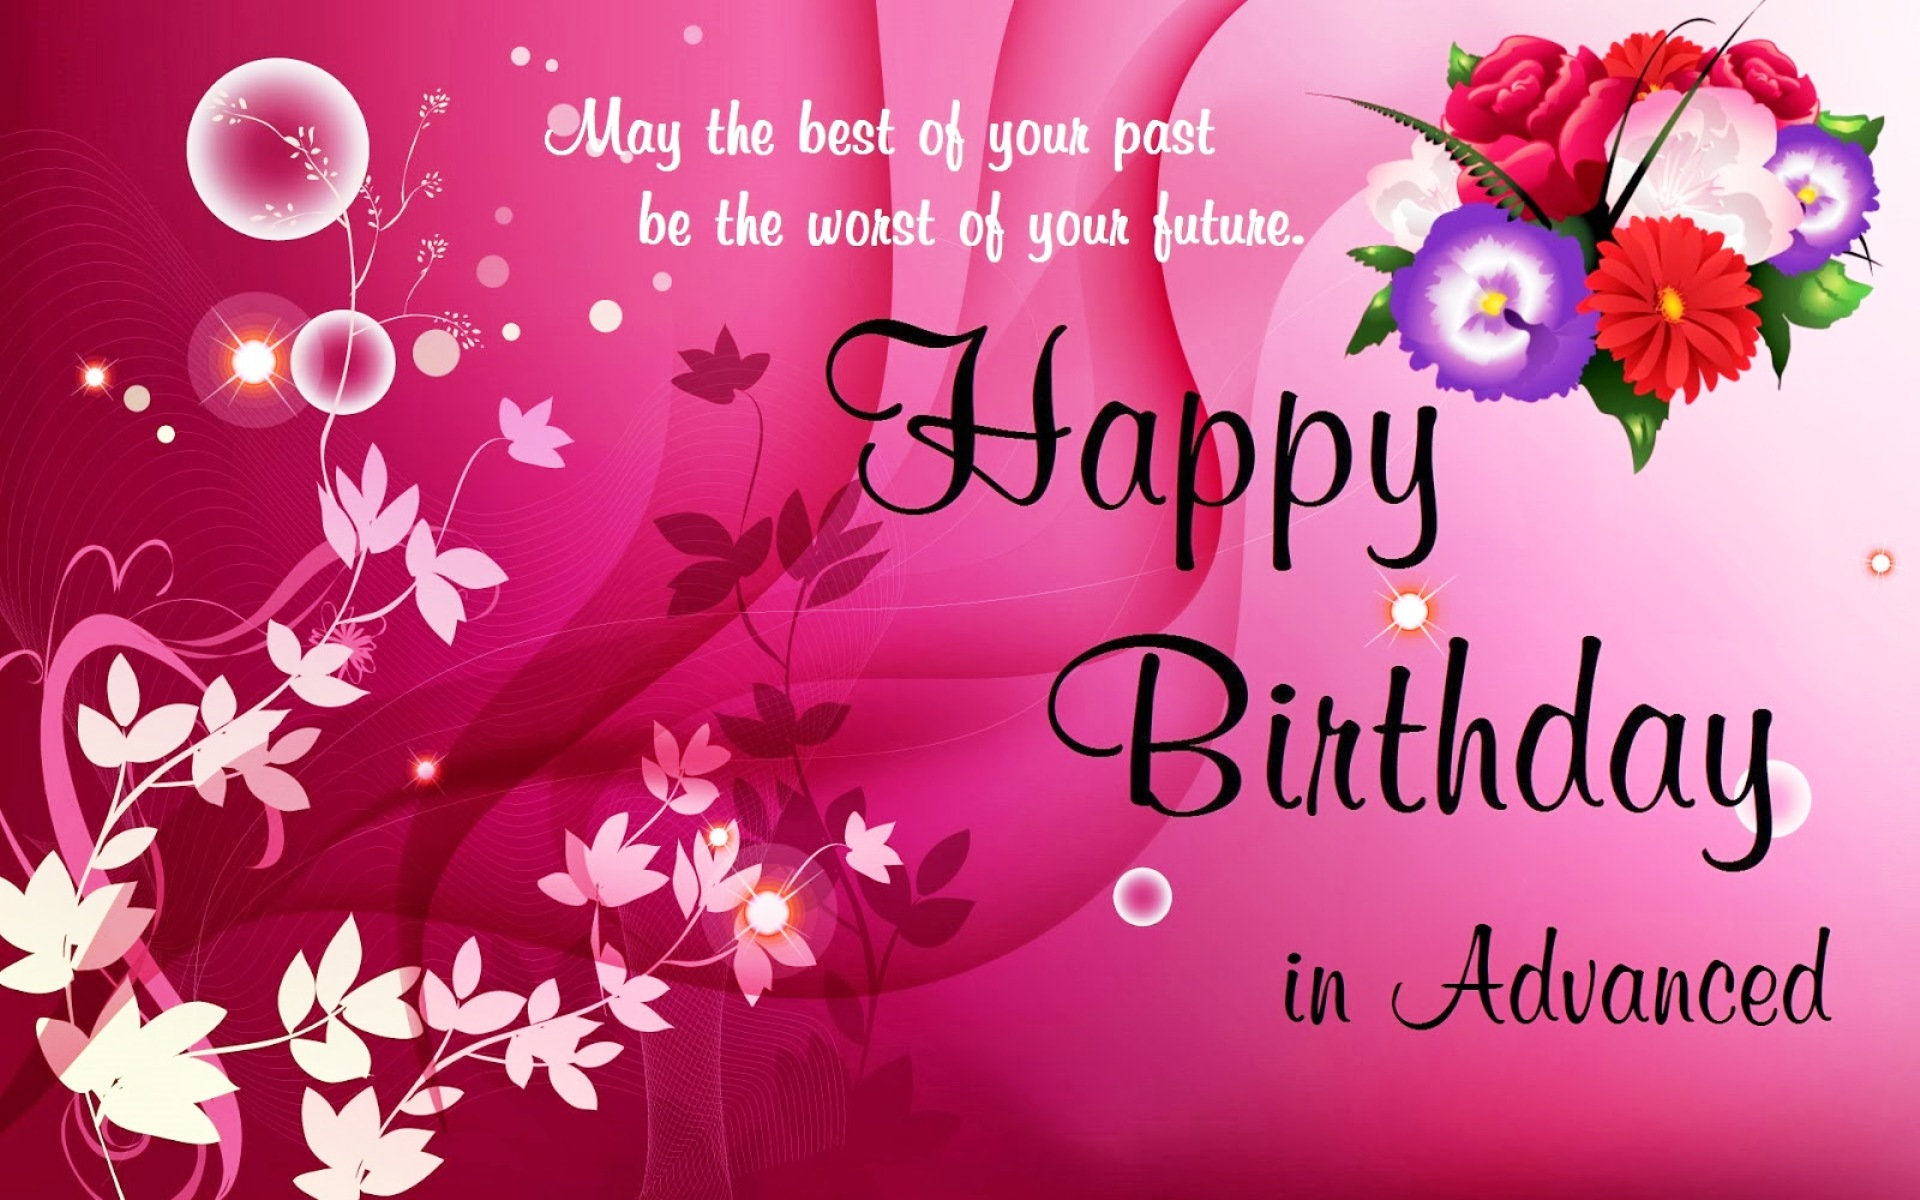 birthday wishes poem ; happy-birthday-images-free-wishes